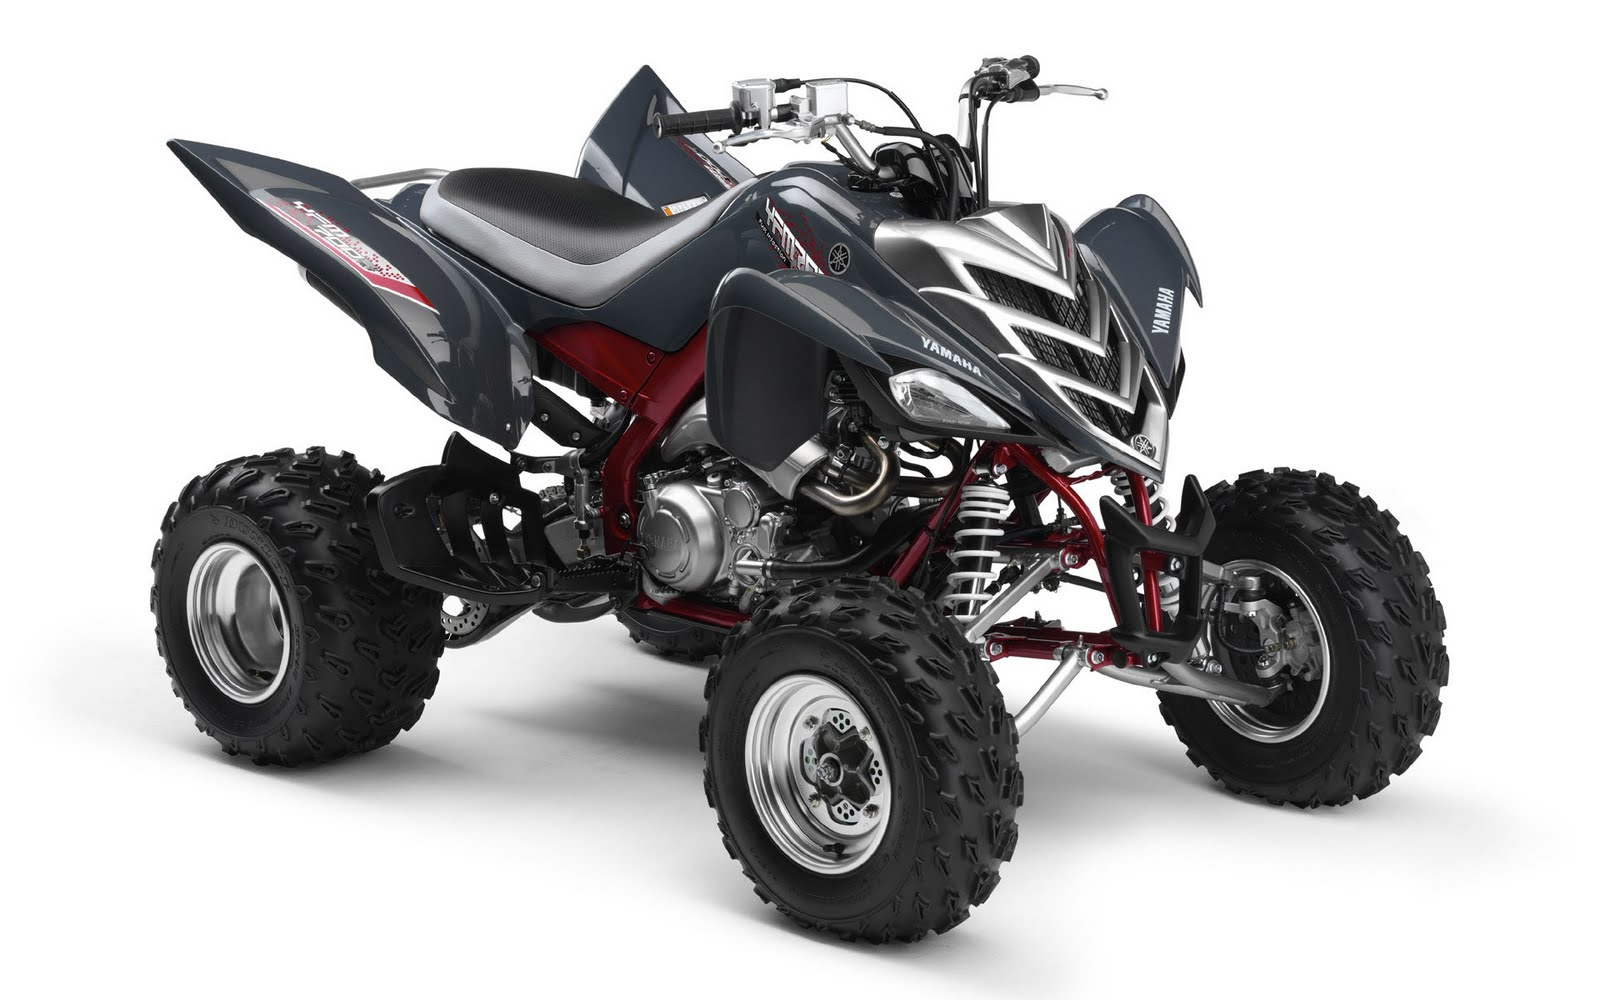 atv wallpapers click for details download the sport amp utility atv 1600x1000